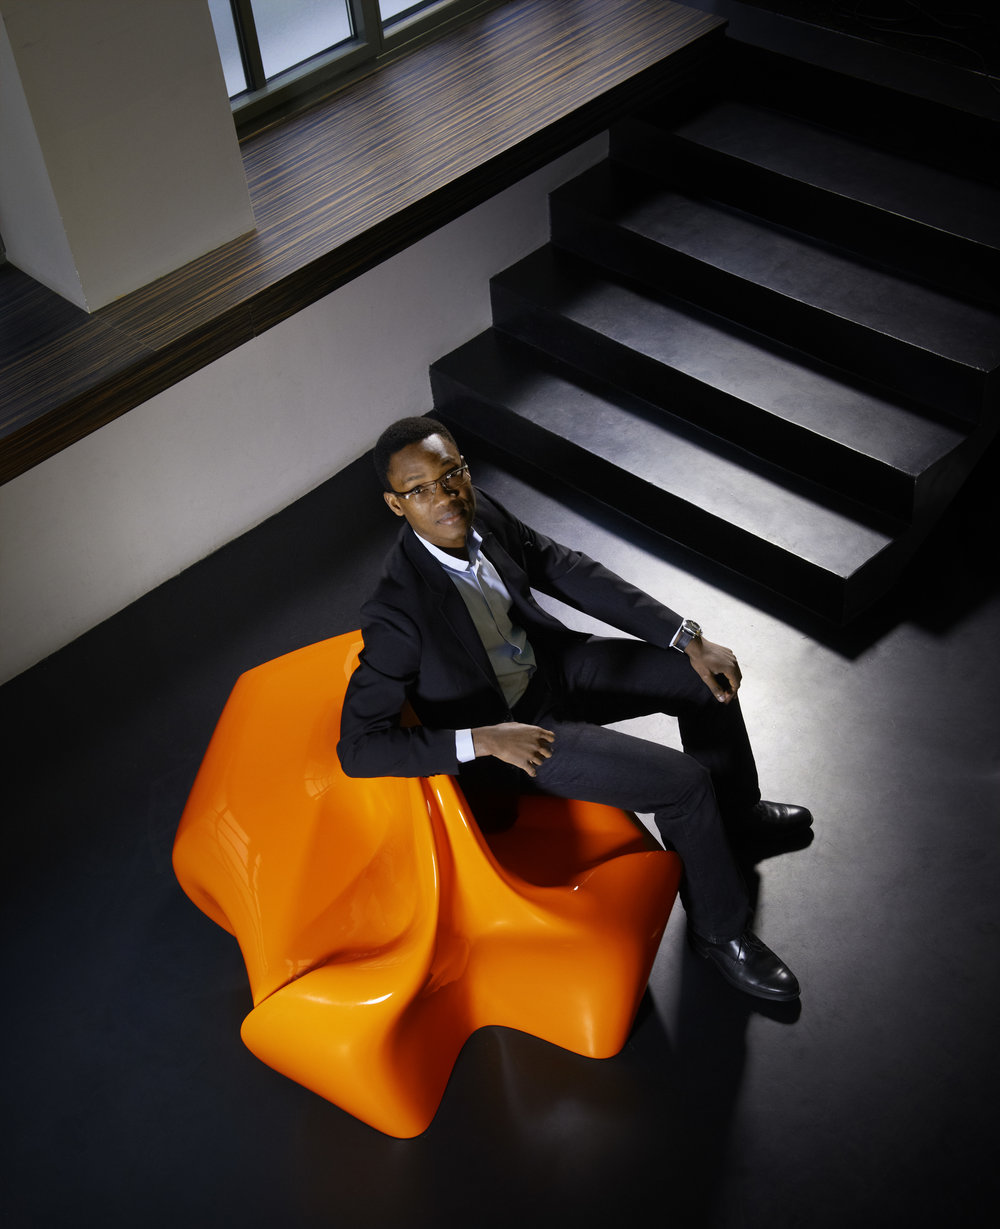 Portrait of Ifeanyi Oganwu on Full Circle. Photo Giles Pernet, courtesy Expand Design Ltd. and Galerie Armel Soyer.